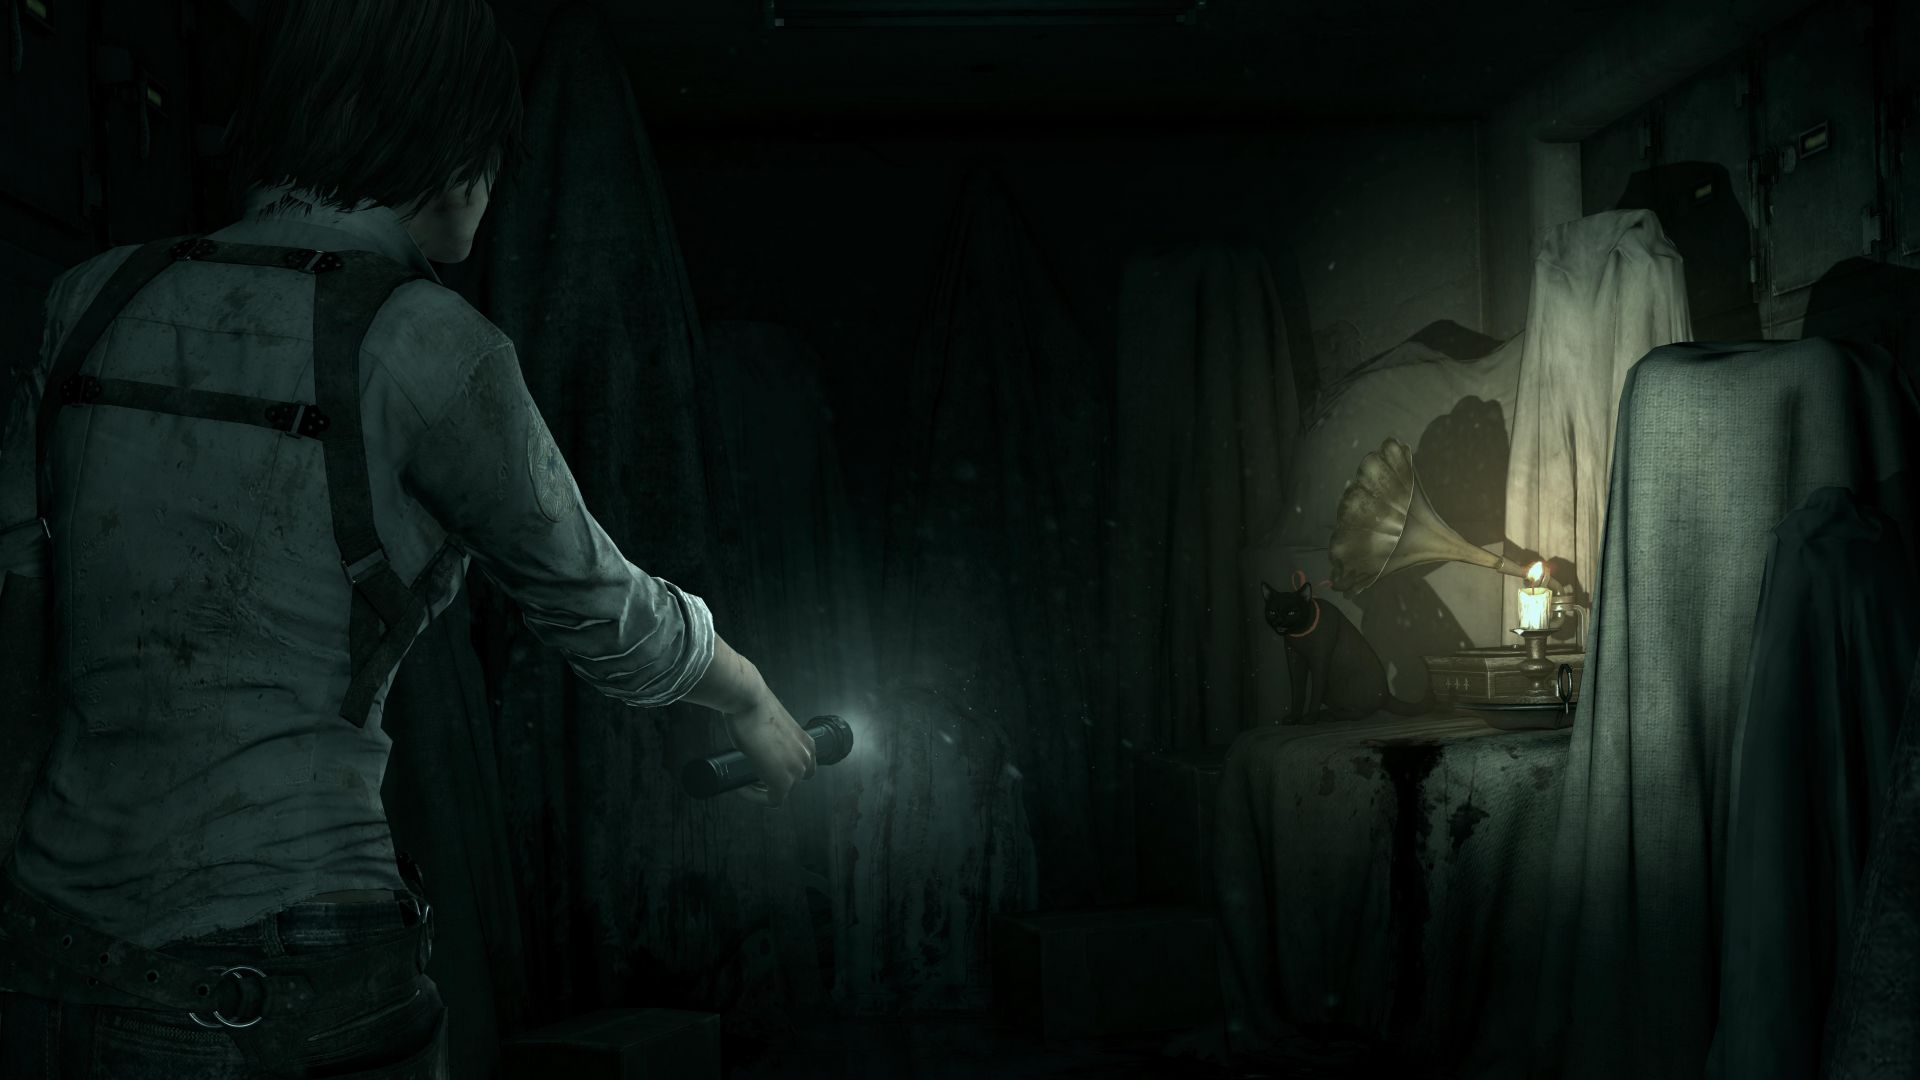 The Evil Within: The Consequence, Лучшие игры 2015, игра, хоррор, ужасы, ПК, The Evil Within: The Consequence, Best Games 2015, game, horror, PC (horizontal)